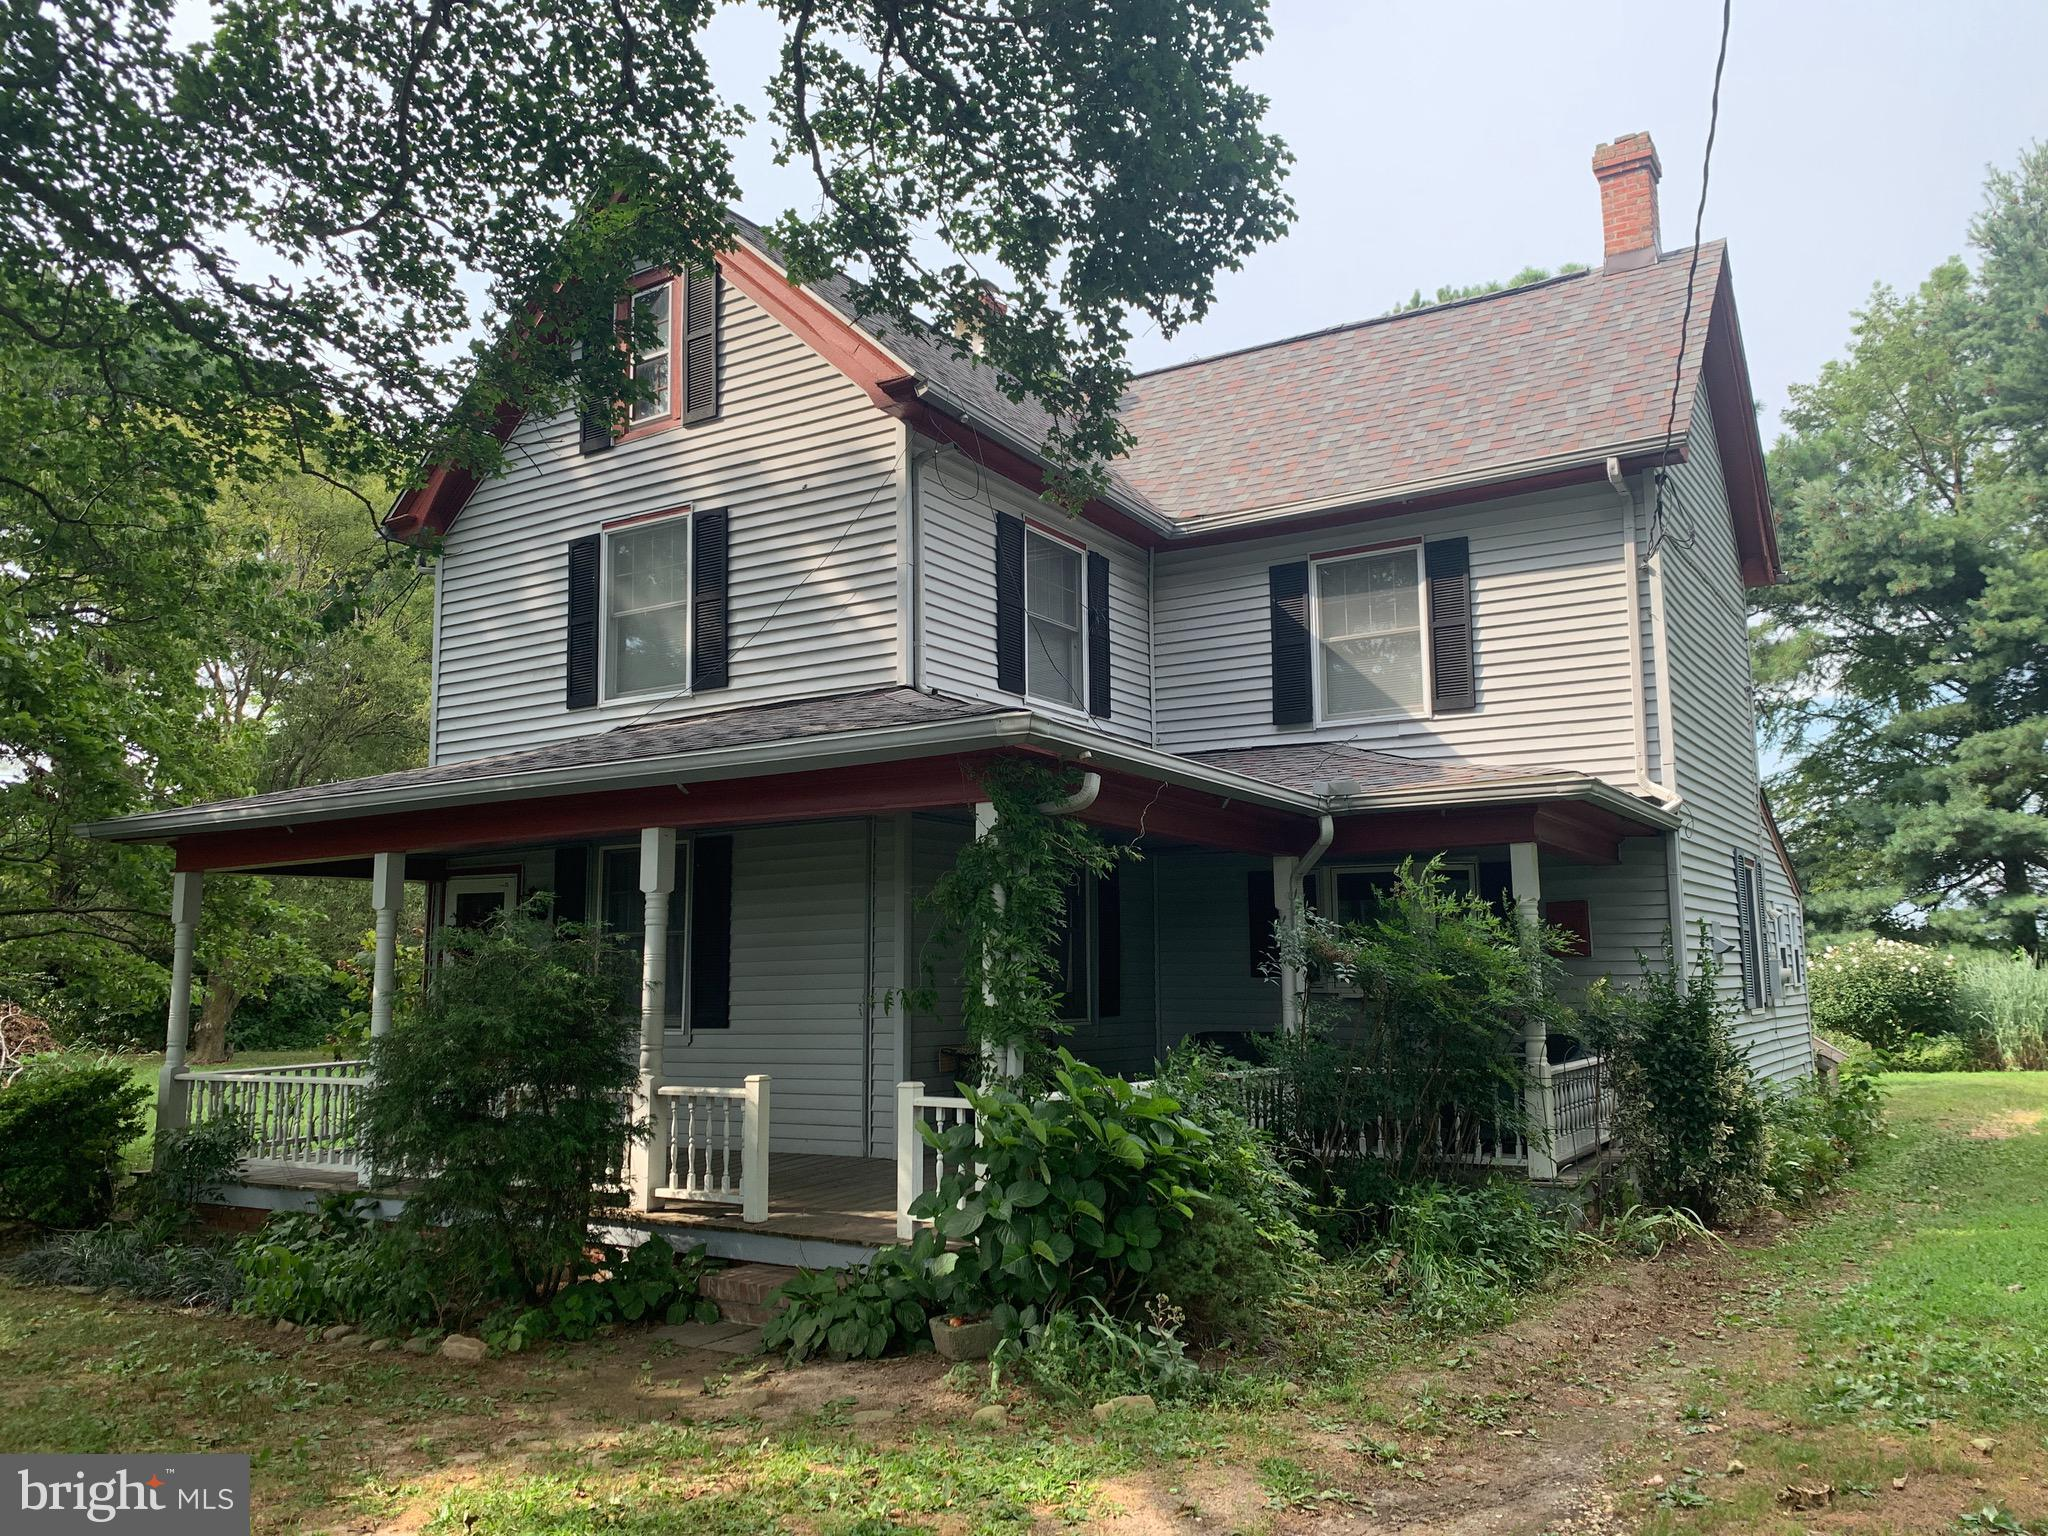 4408 E NEW MARKET RHODESDALE ROAD, EAST NEW MARKET, MD 21631